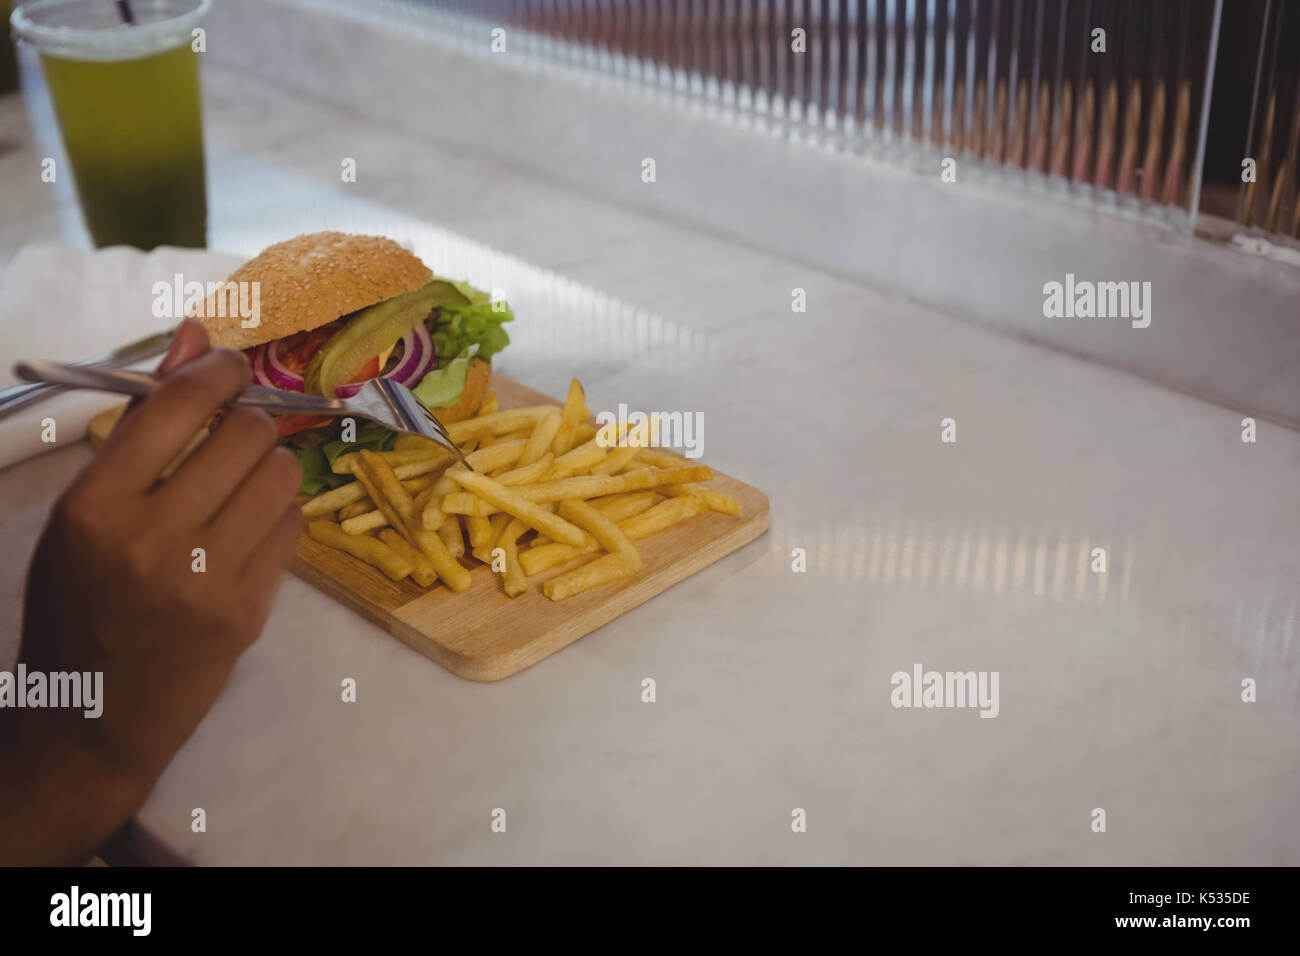 Cropped hand of woman having French fries and burger at counter in cafe - Stock Image